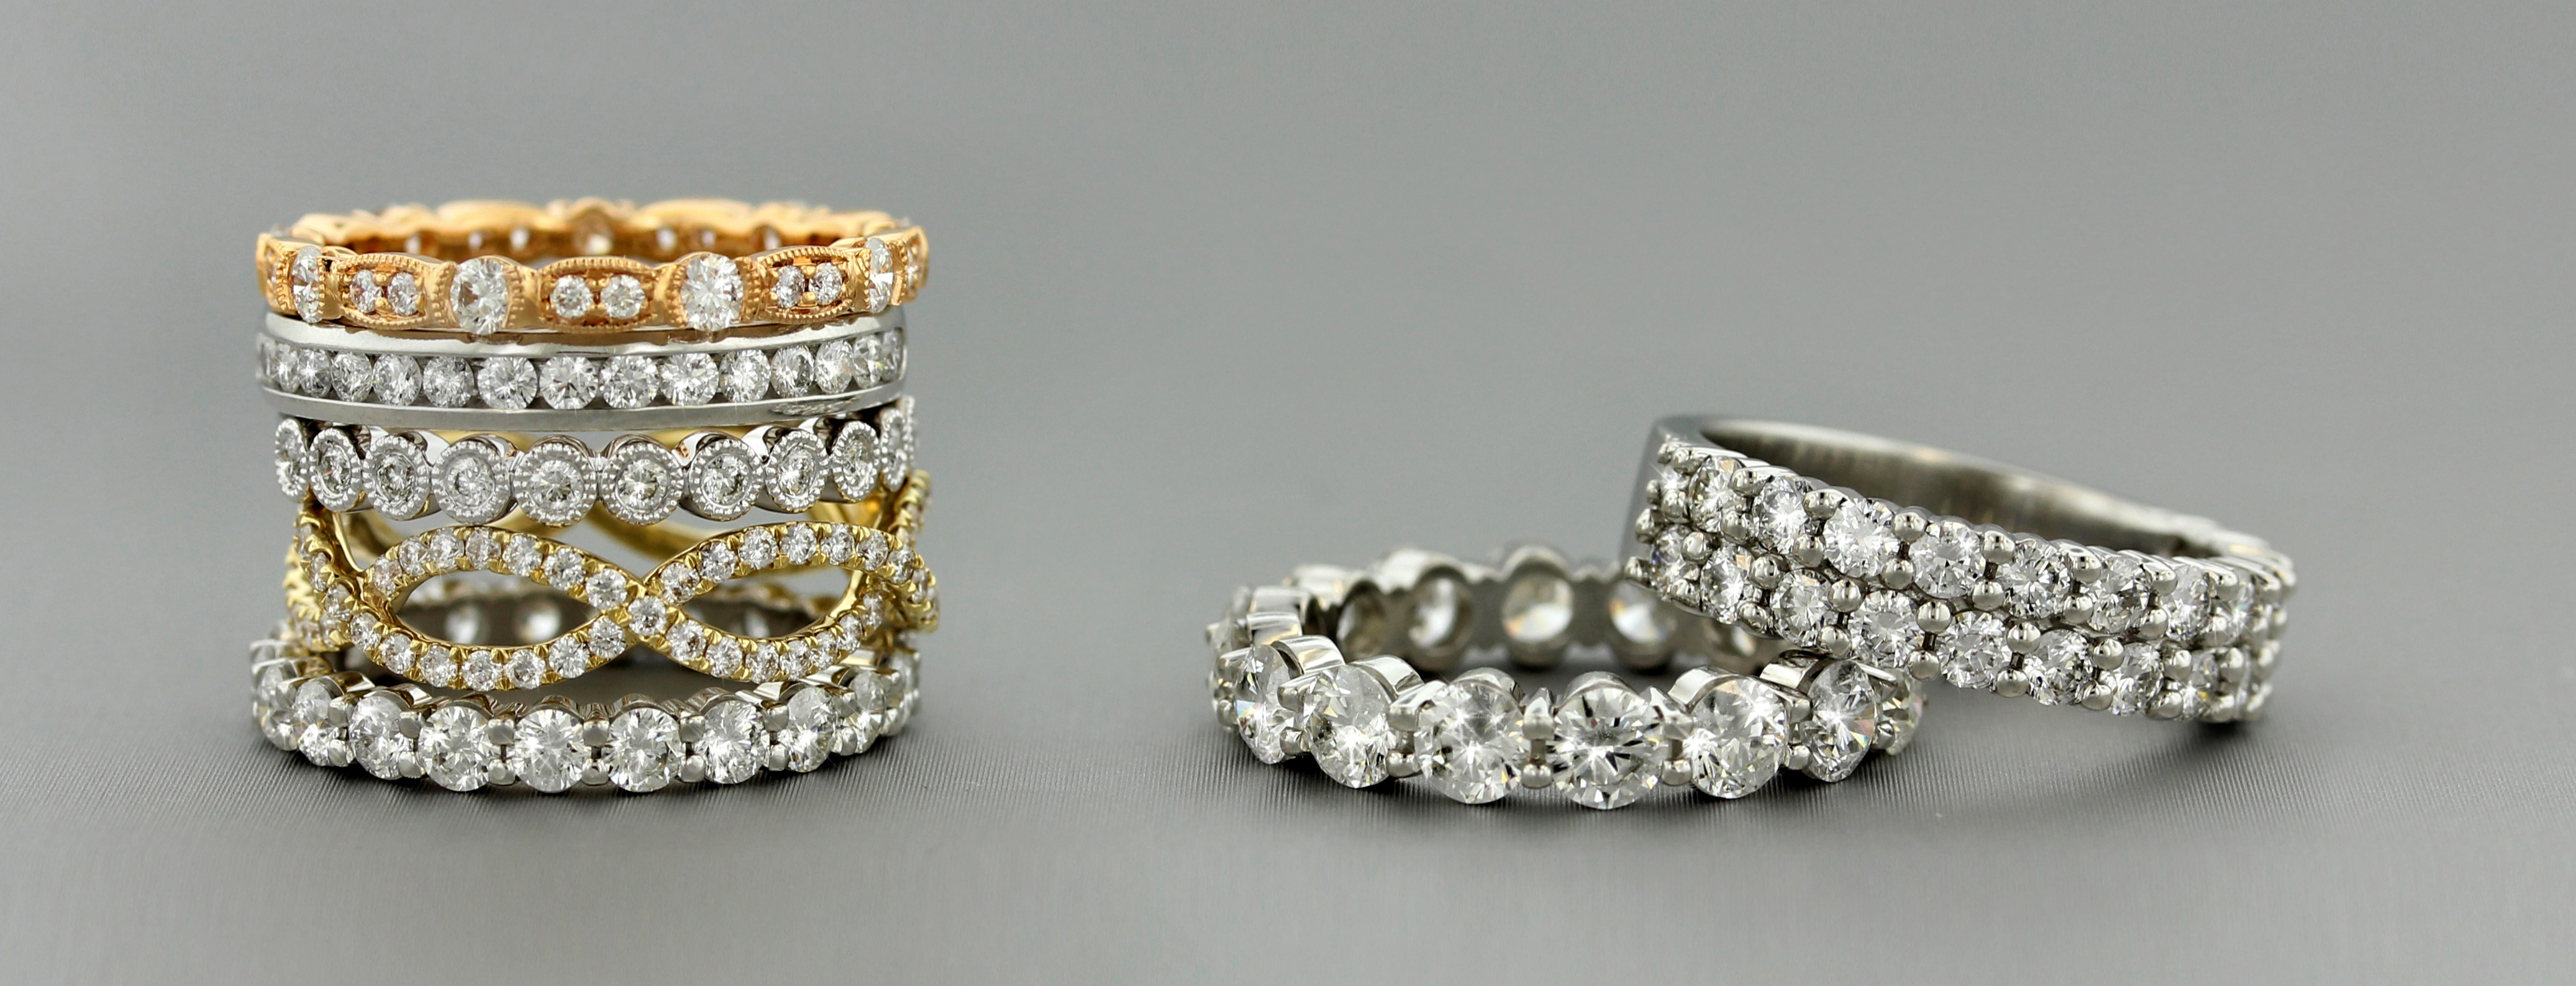 Stackable Eternity Bands